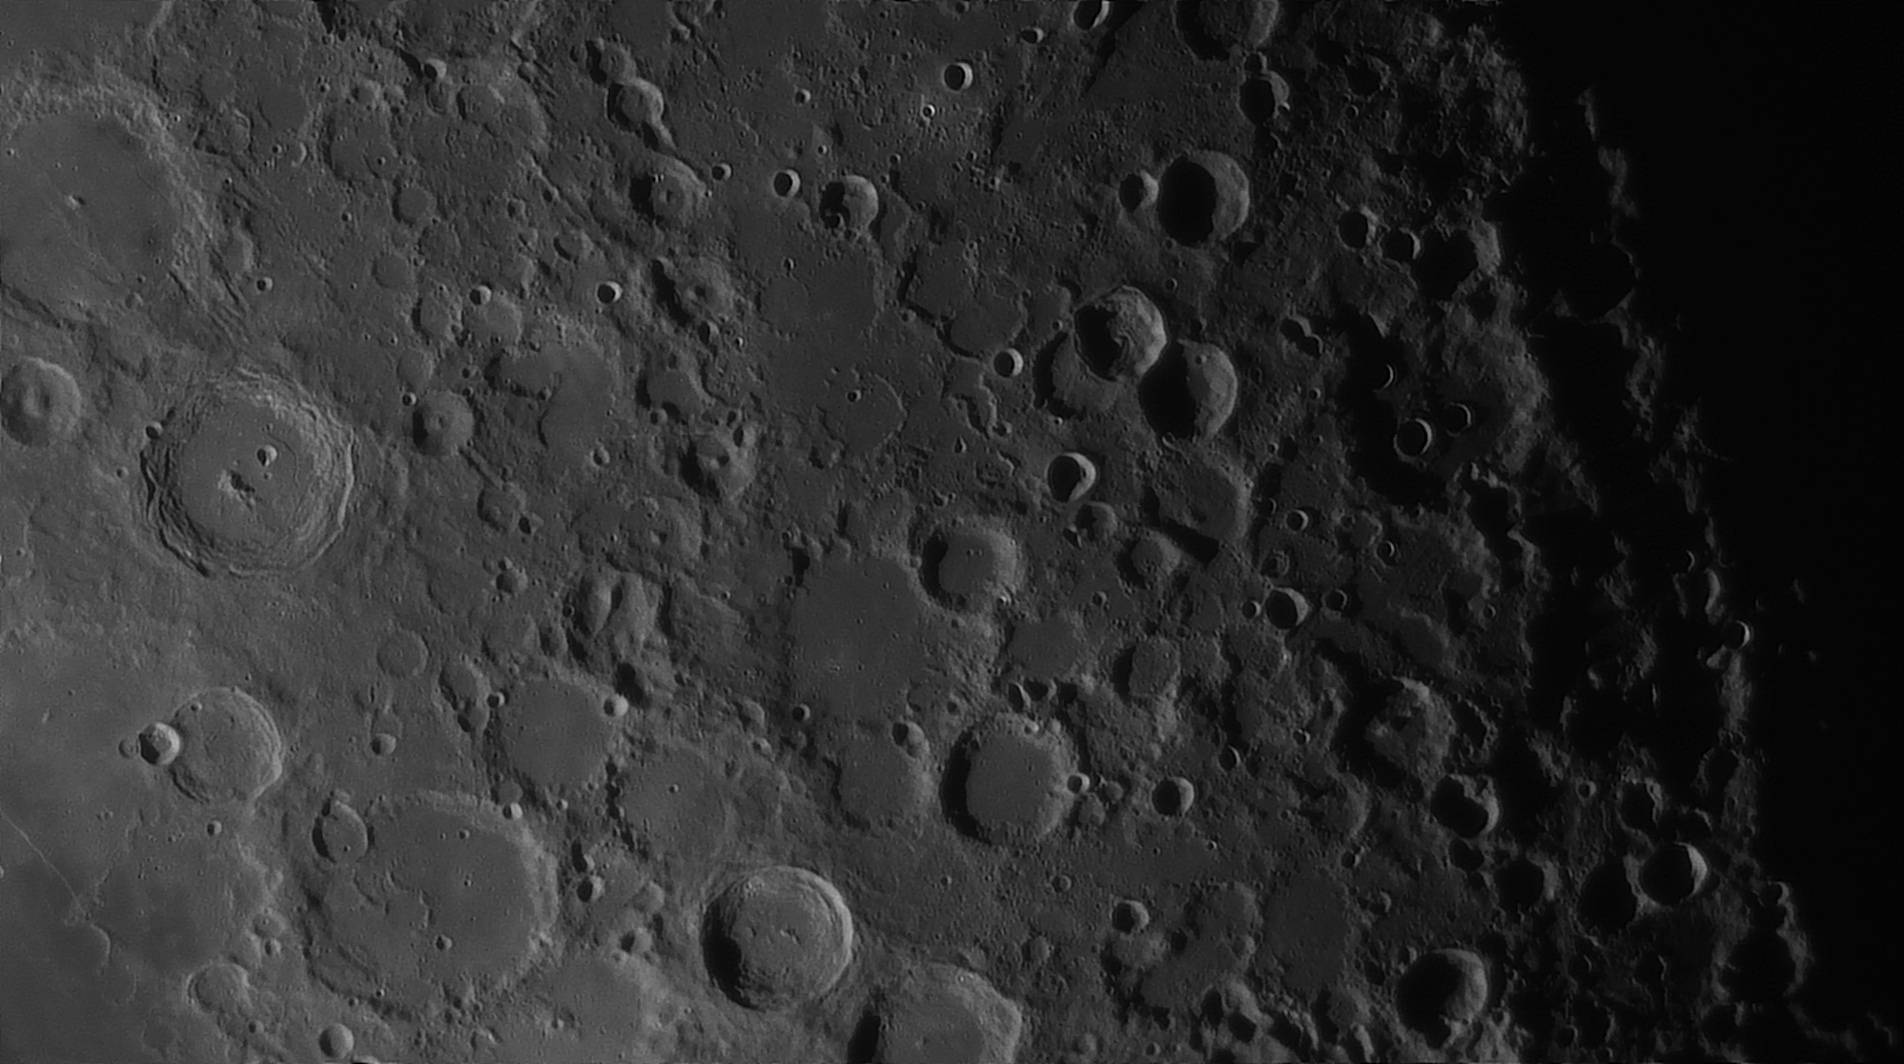 5e51960670841_Moon_054609_160120_ZWOASI290MM_Rouge_23A_AS_P35_lapl6_ap894_AI_Deconvolution_17--.jpg.86552df49955b0bf33d21aacd9d566d5.jpg